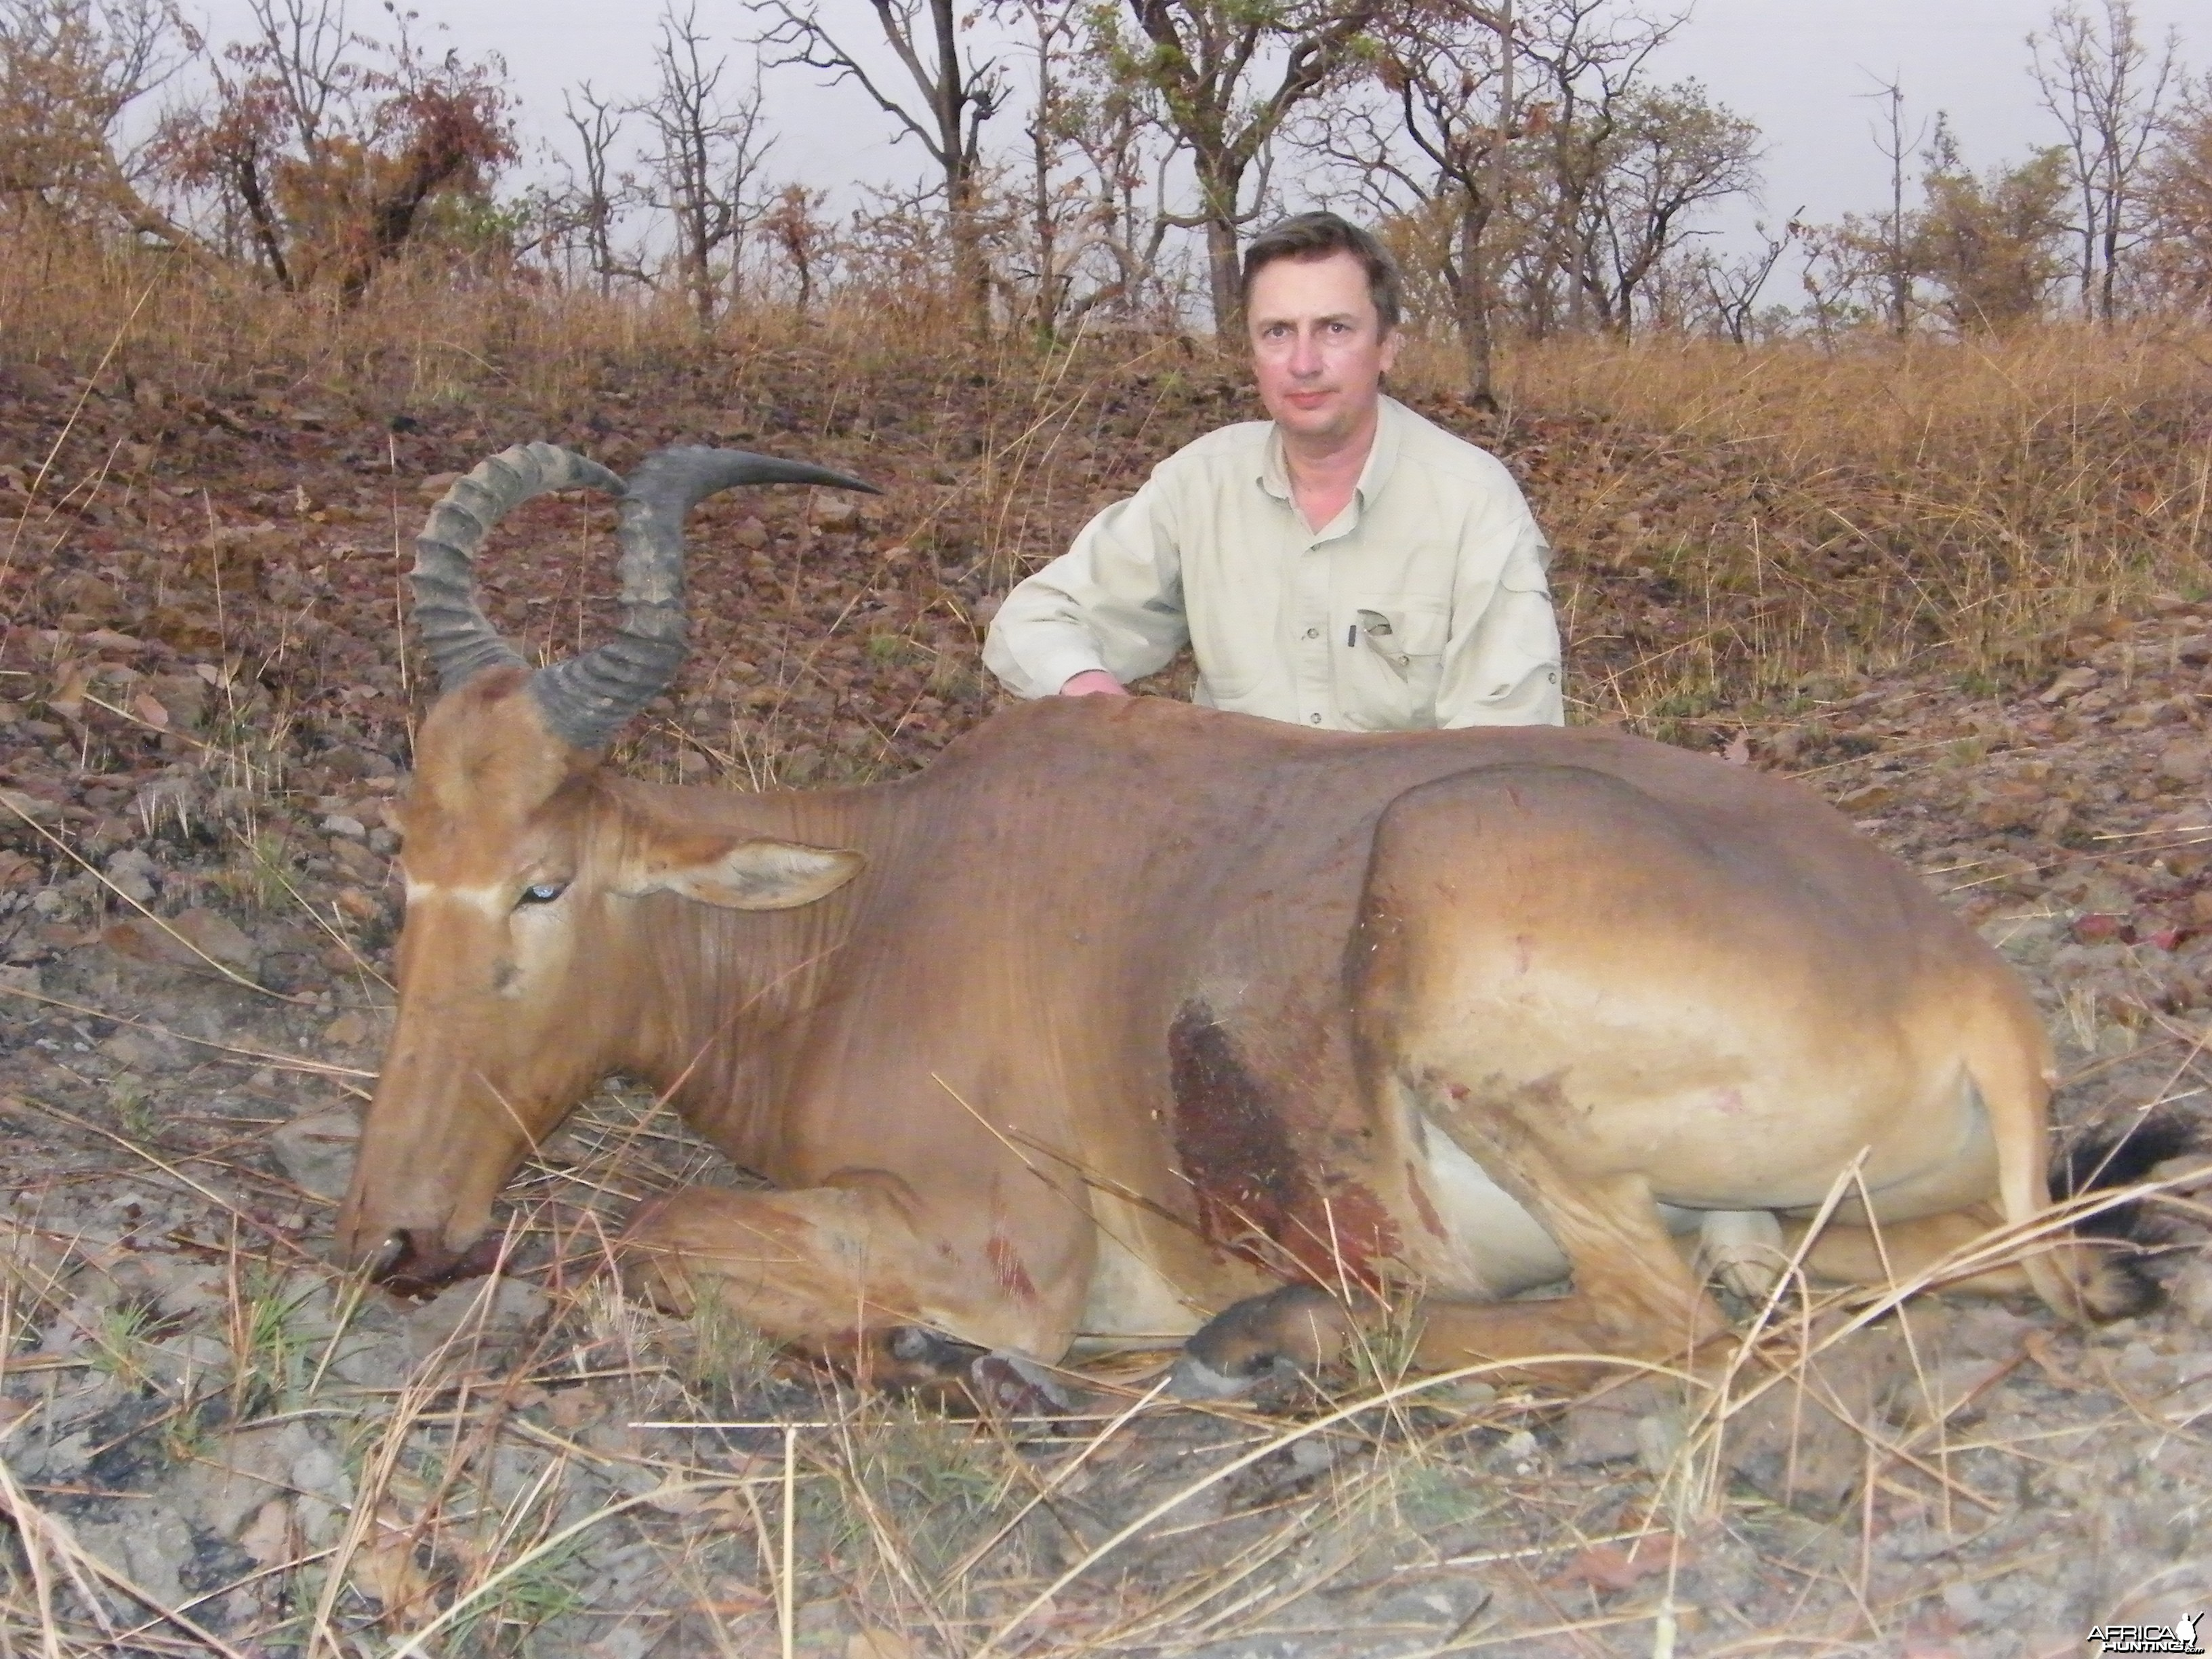 Western Hartebeest hunted in Benin with Club Faune